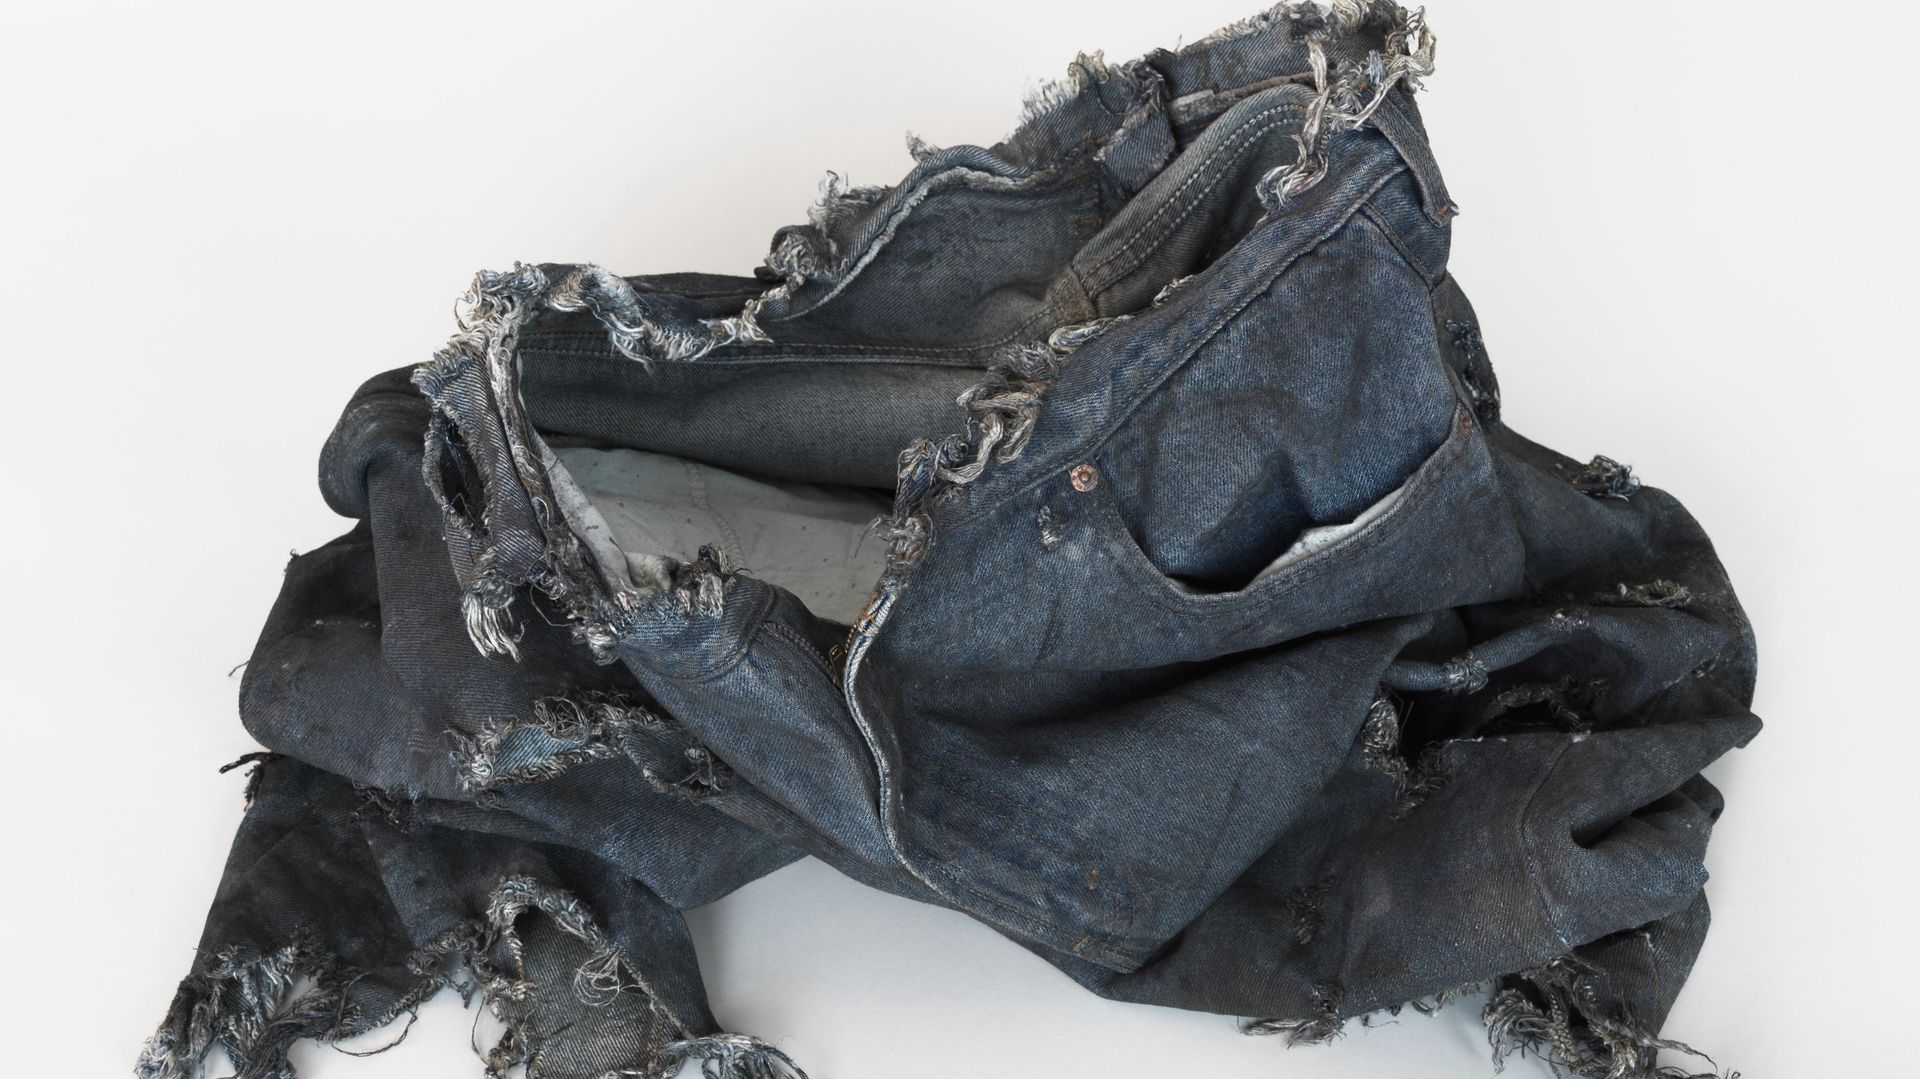 Monika Stricker:THE INCREDIBLE HULK 2008, Bruce Banner (Edward Norton) Ripped Test Jeans, 2013, mixed media, cooperate cinema, dimensions variabel, Courtesy: Clages Köln